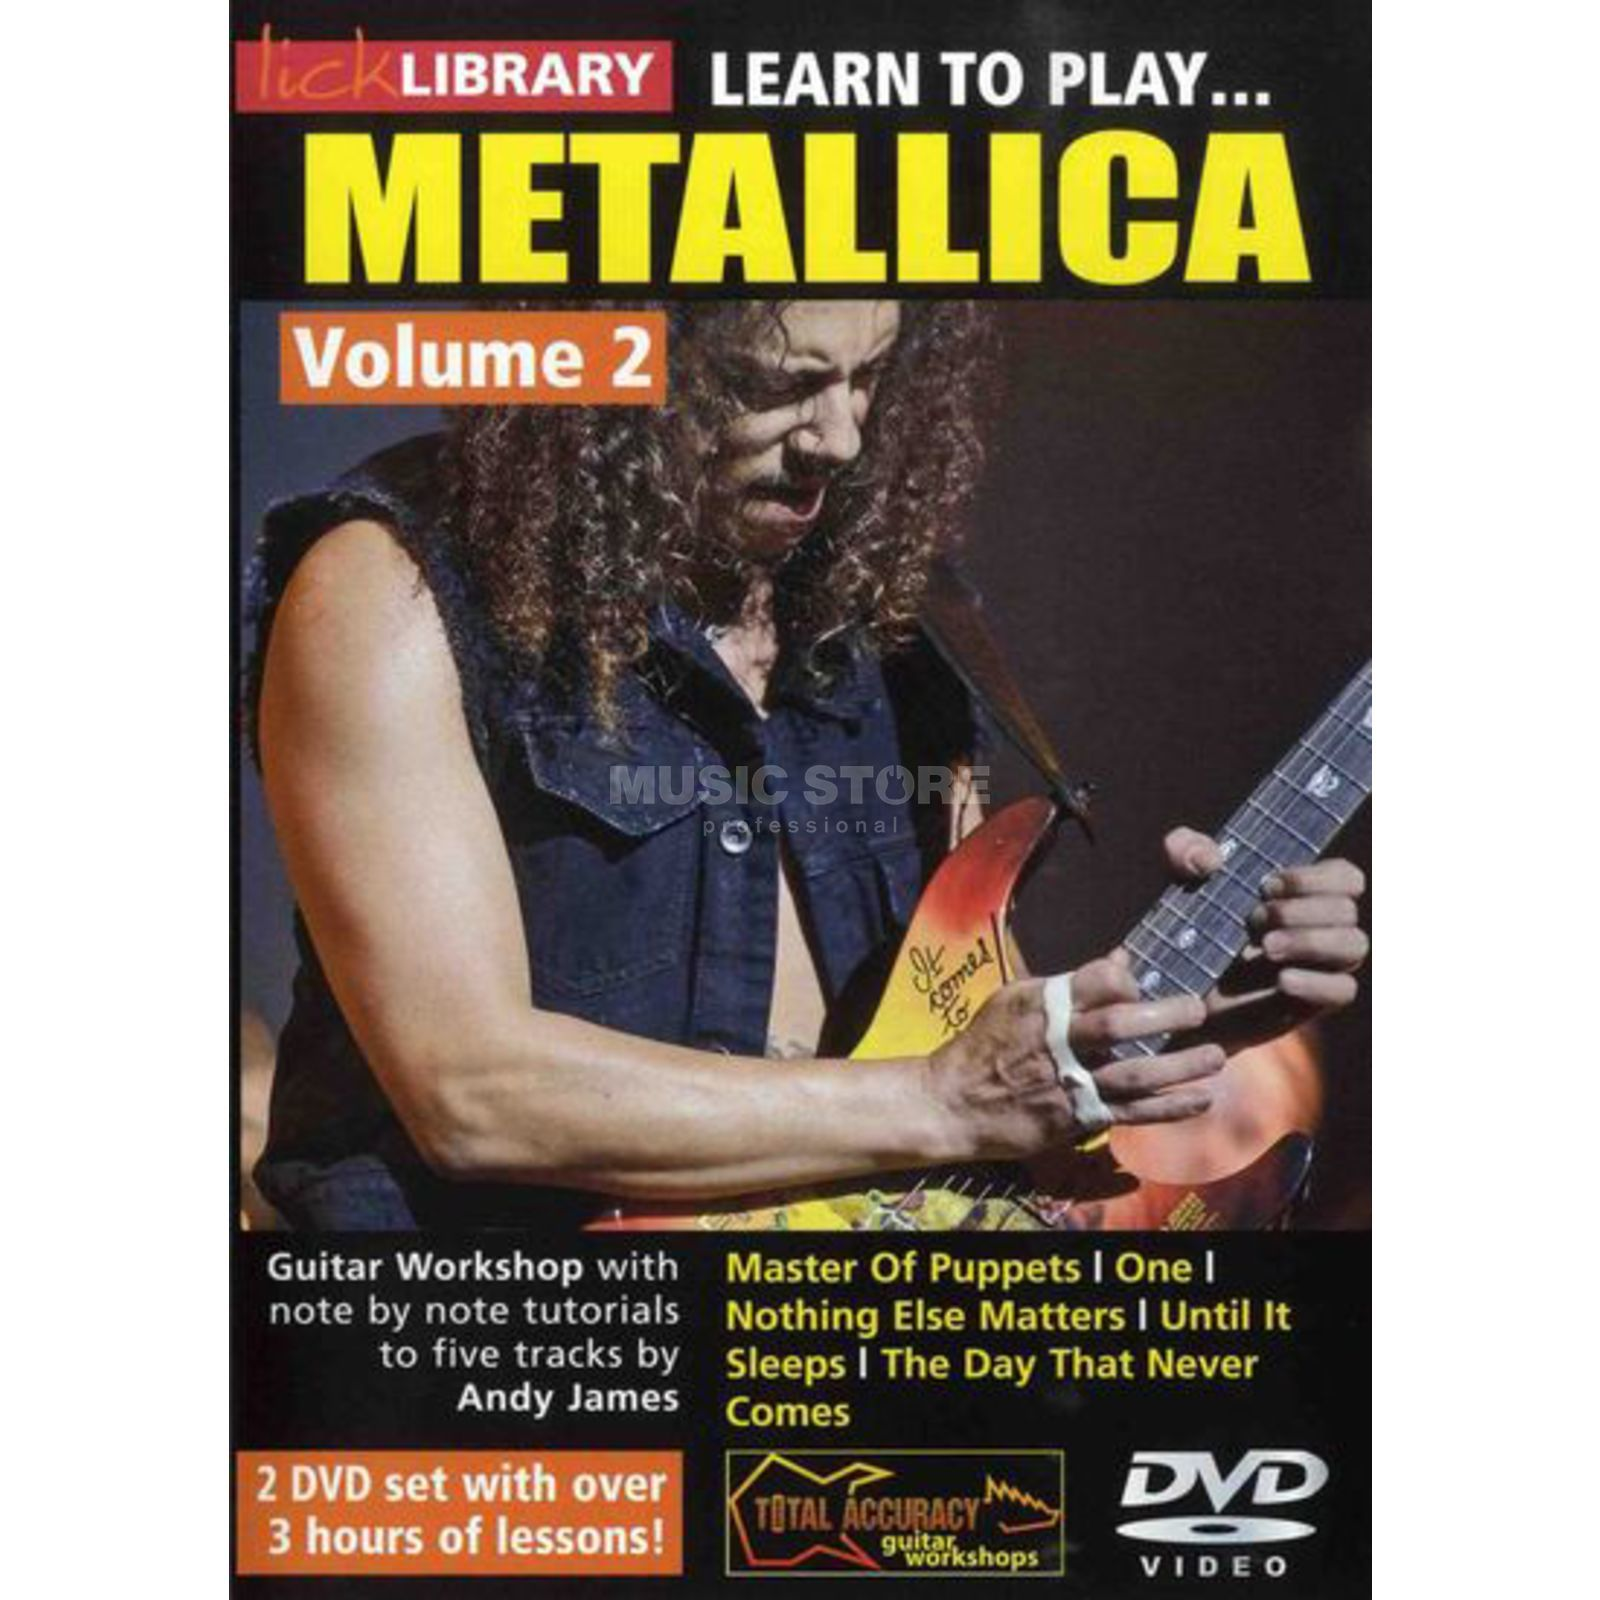 Roadrock International Lick Library: Learn To Play Metallica 2 DVD Produktbillede